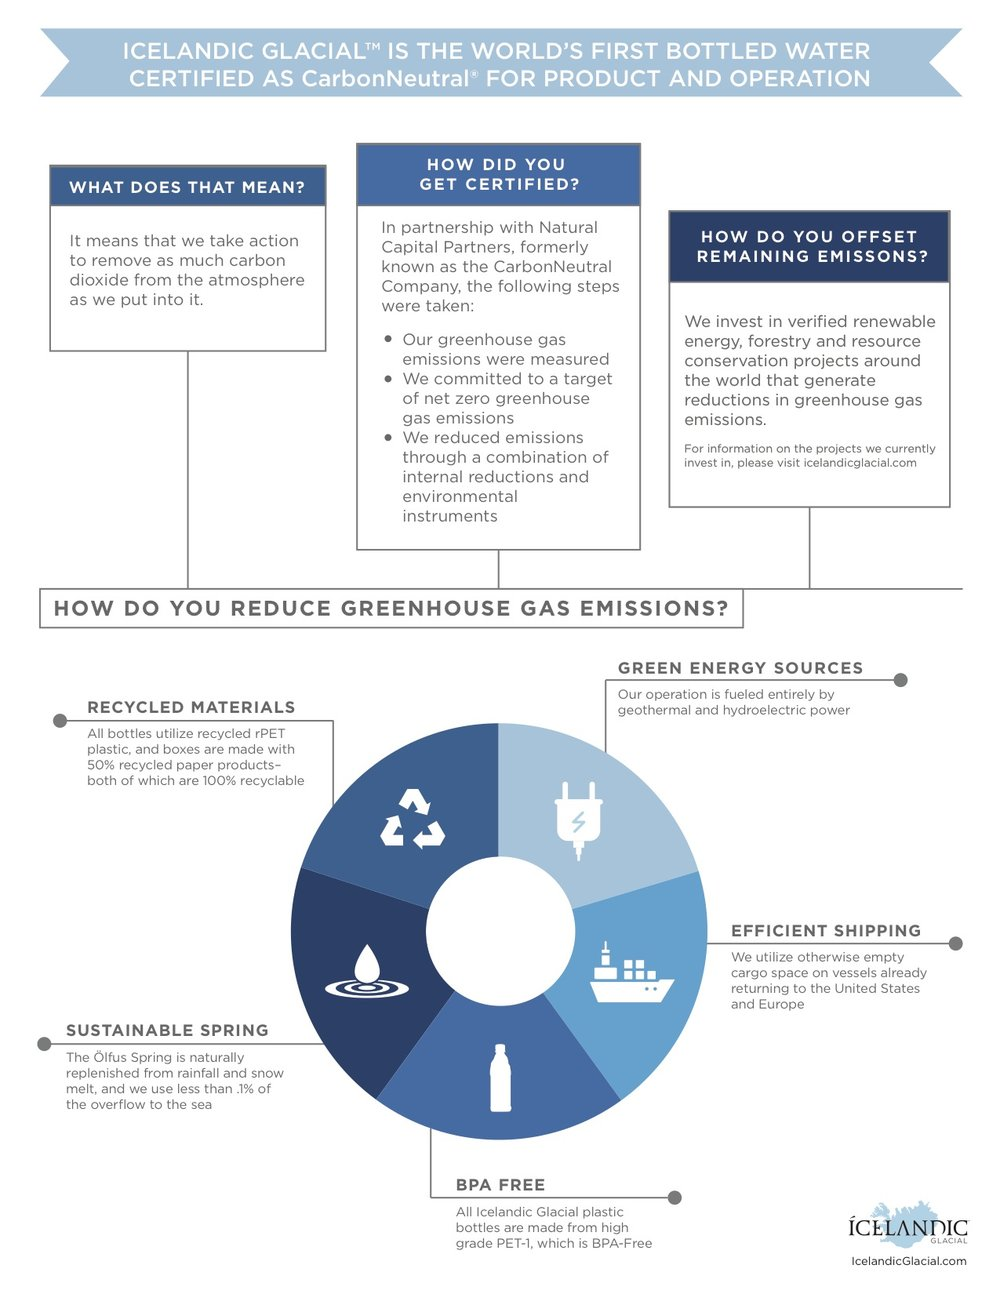 Infographic explaining how Icelandic Glacial became CarbonNeutral certified and current eco-friendly practices.